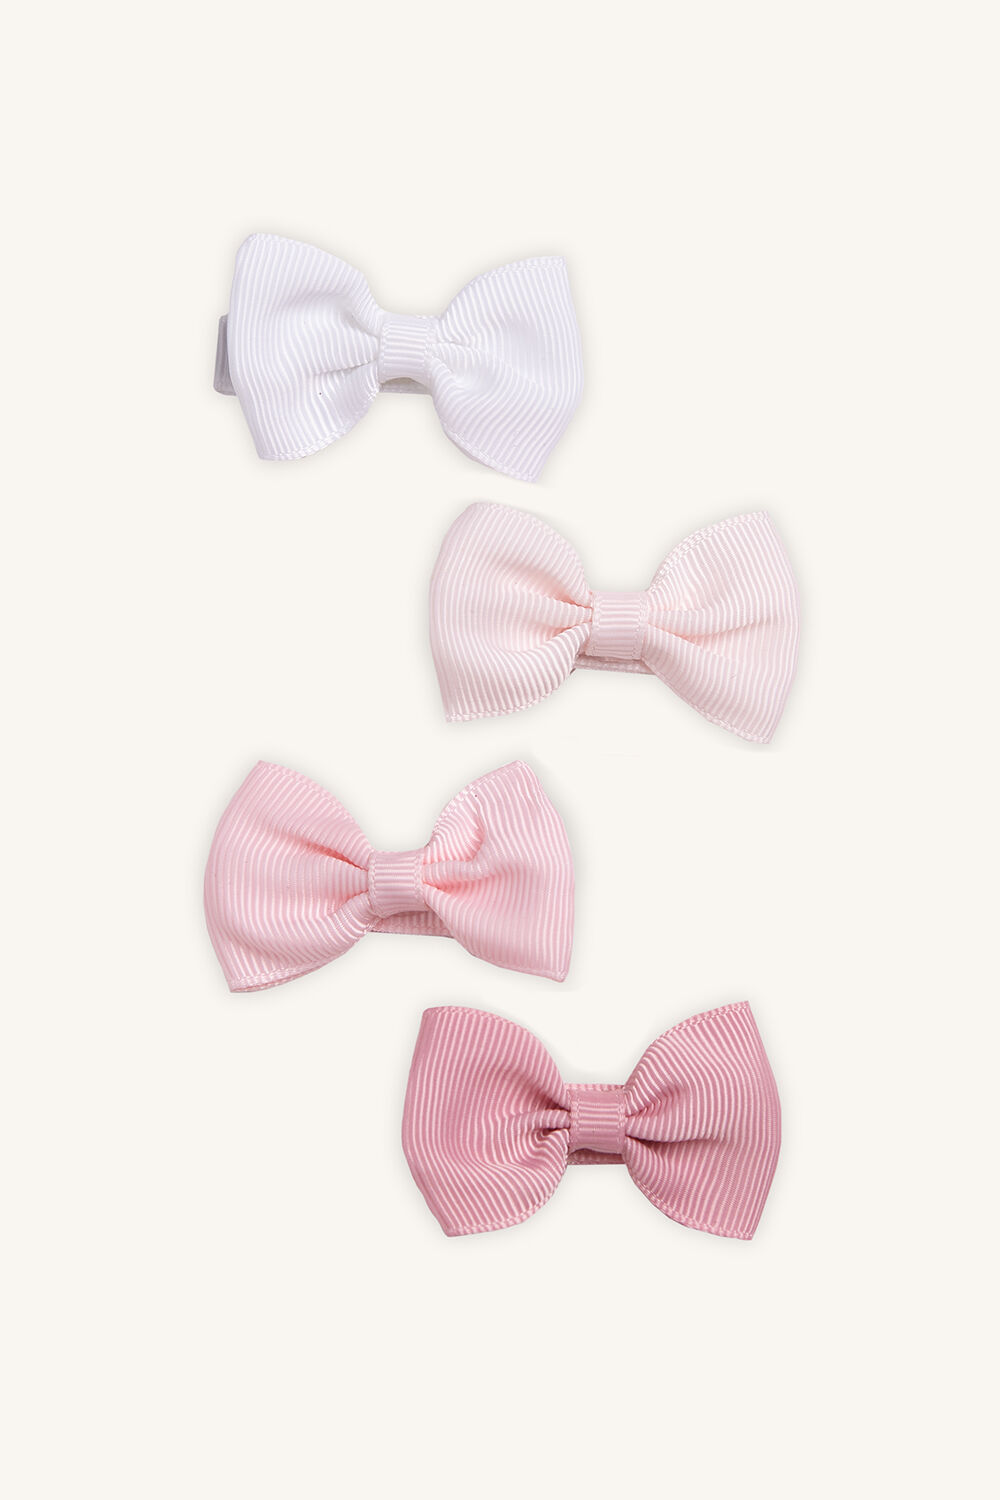 MINI GROSGRAIN BOW 4 PACK in colour PINK CARNATION